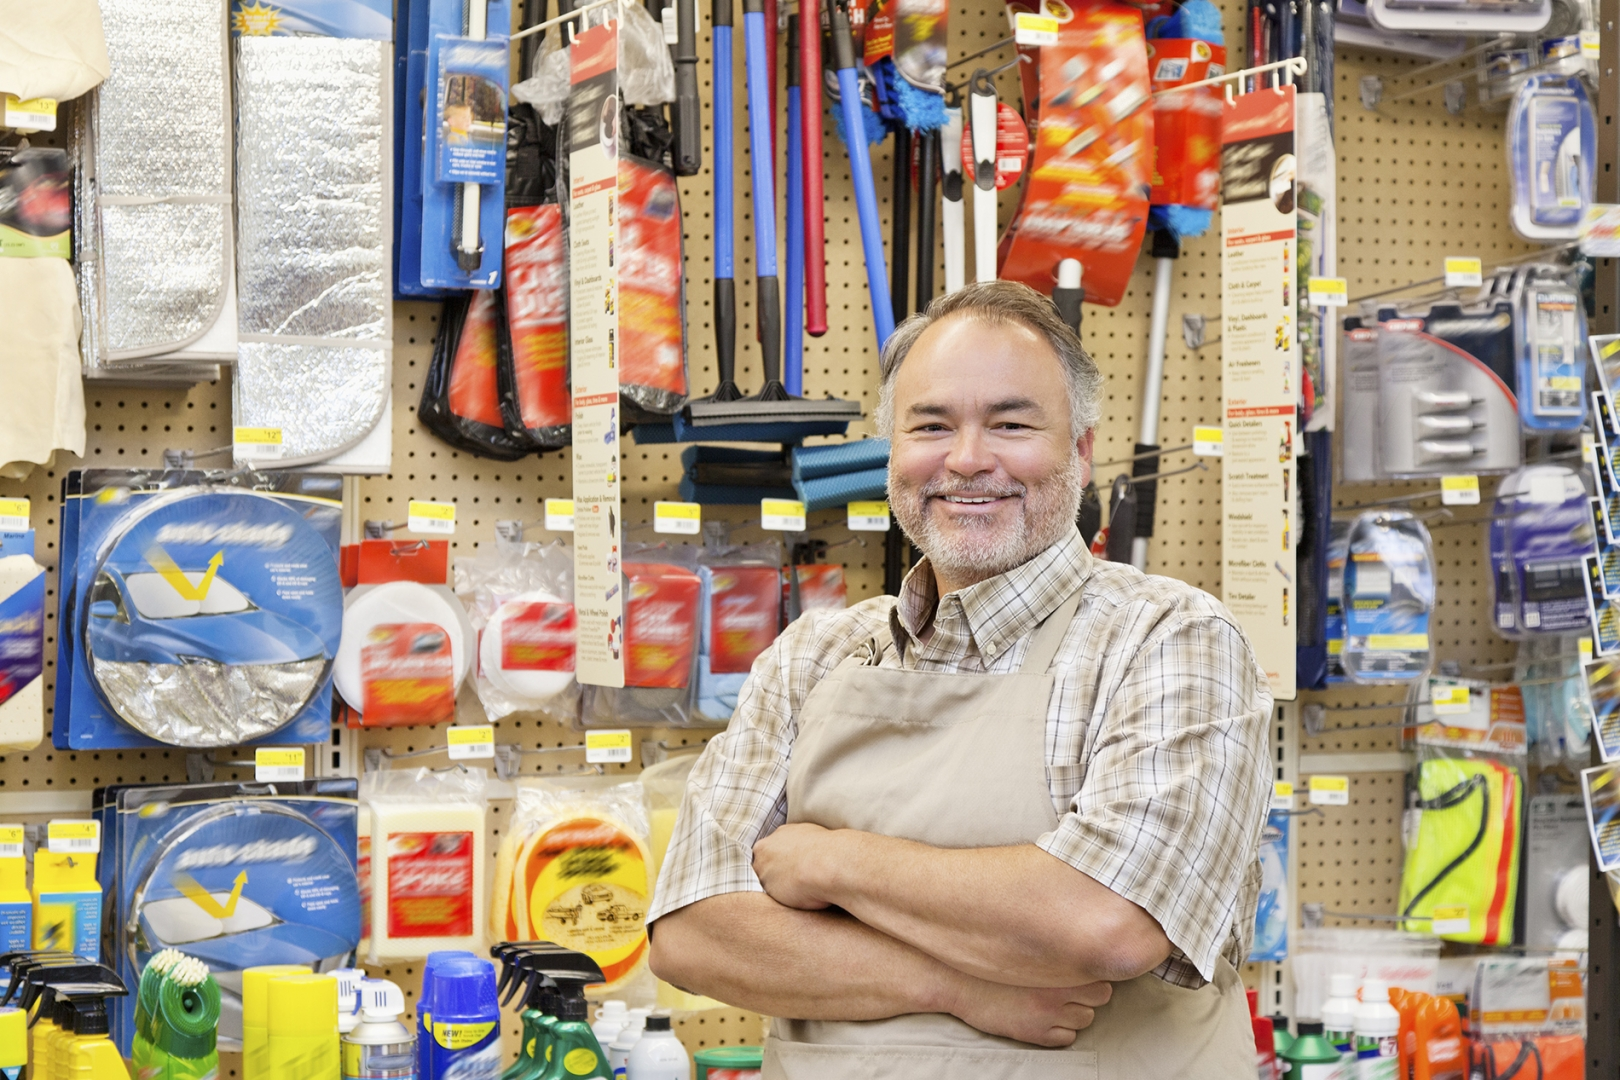 A store owner stands proudly in his store